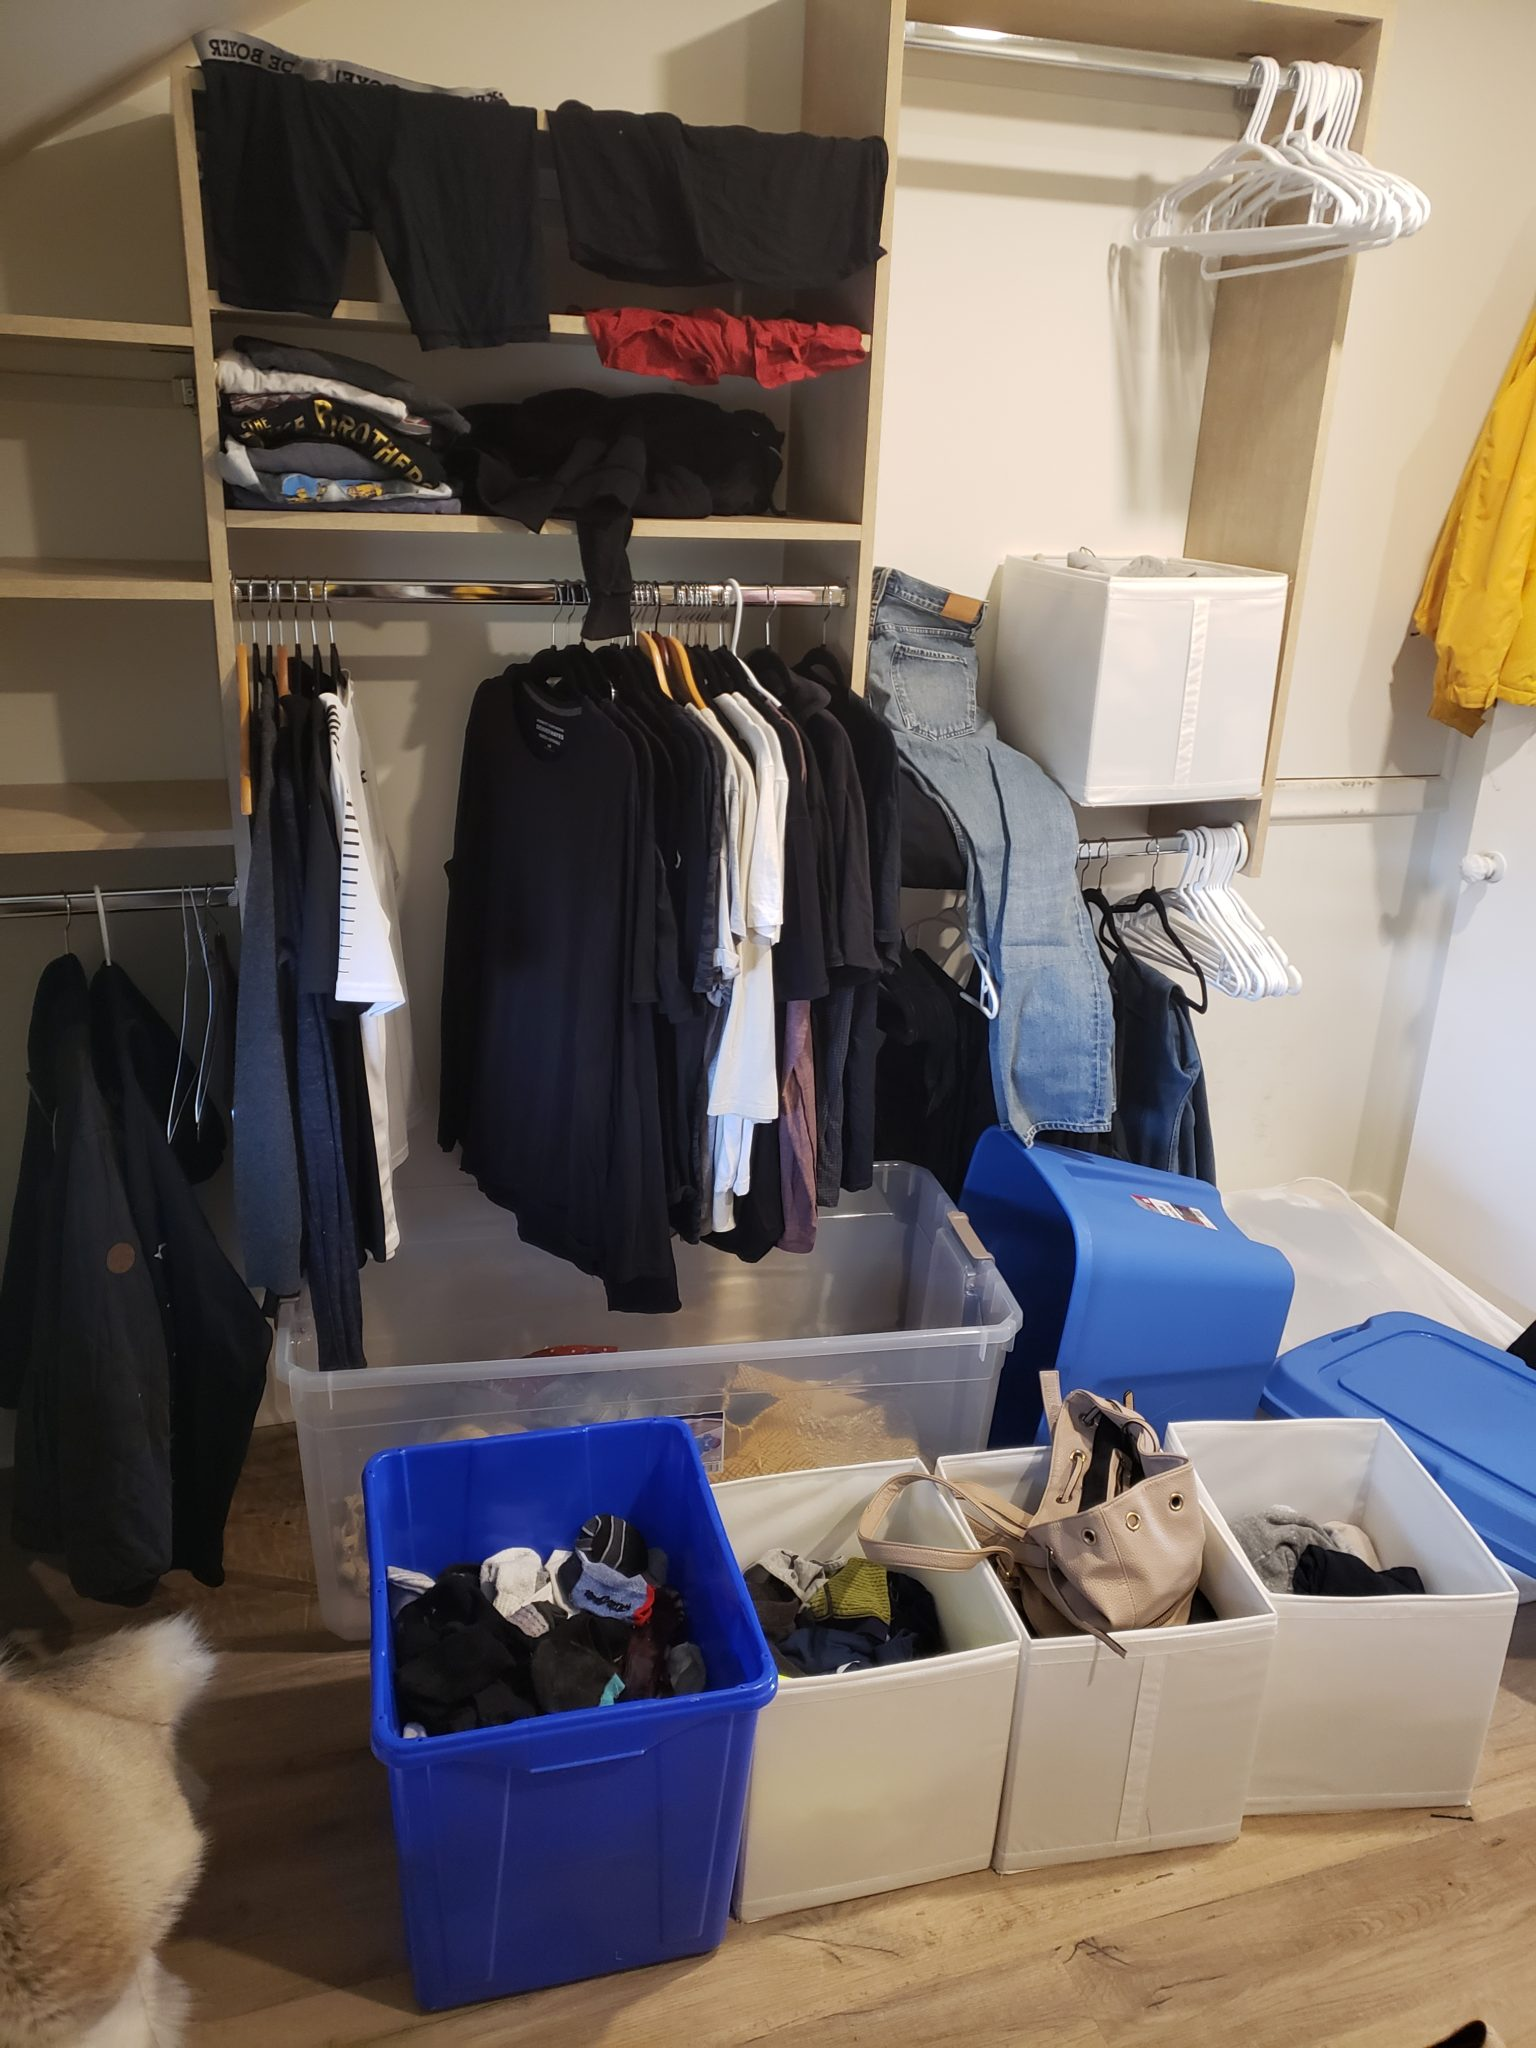 Home closet - Before